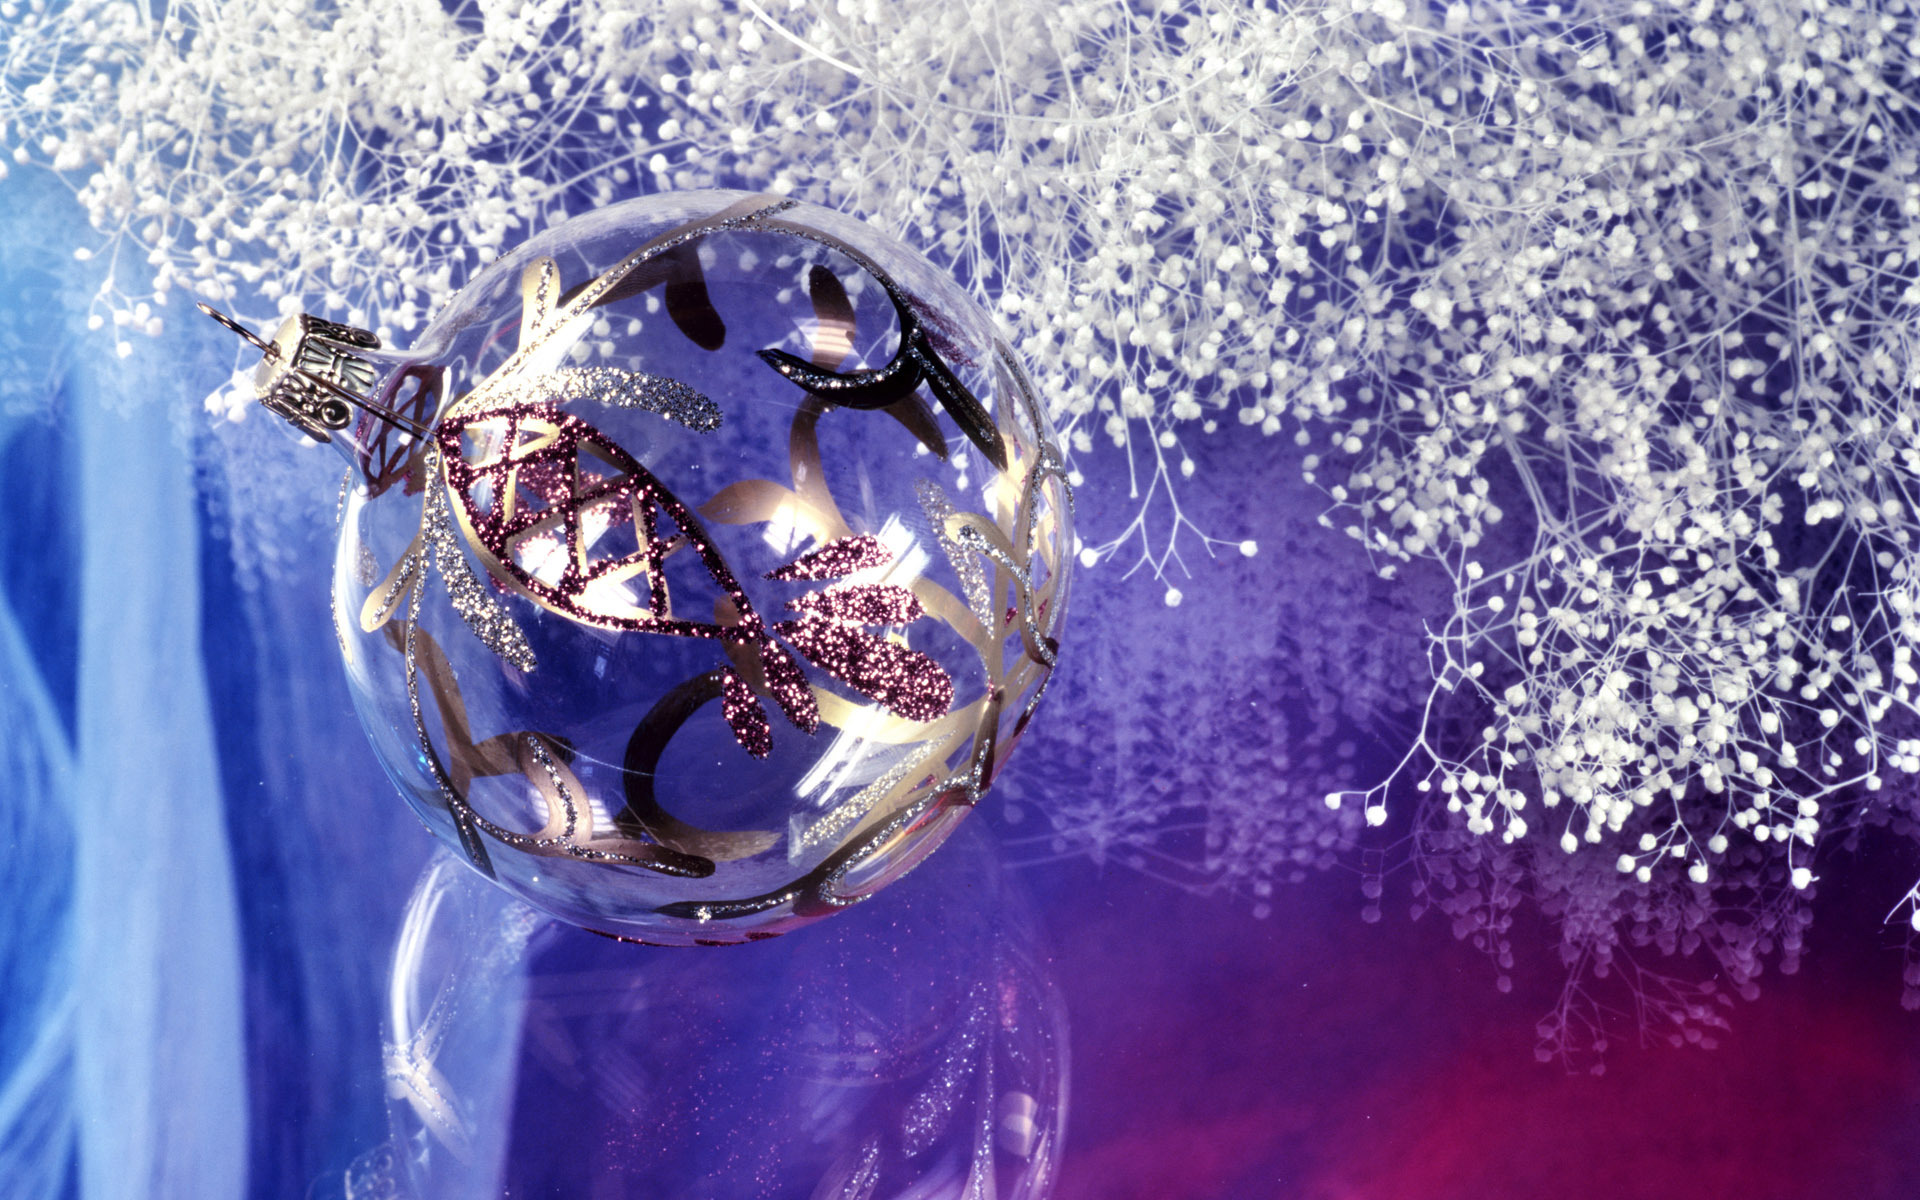 christmas images silver christmas decorations hd wallpaper and background photos - Purple And Silver Christmas Decorations